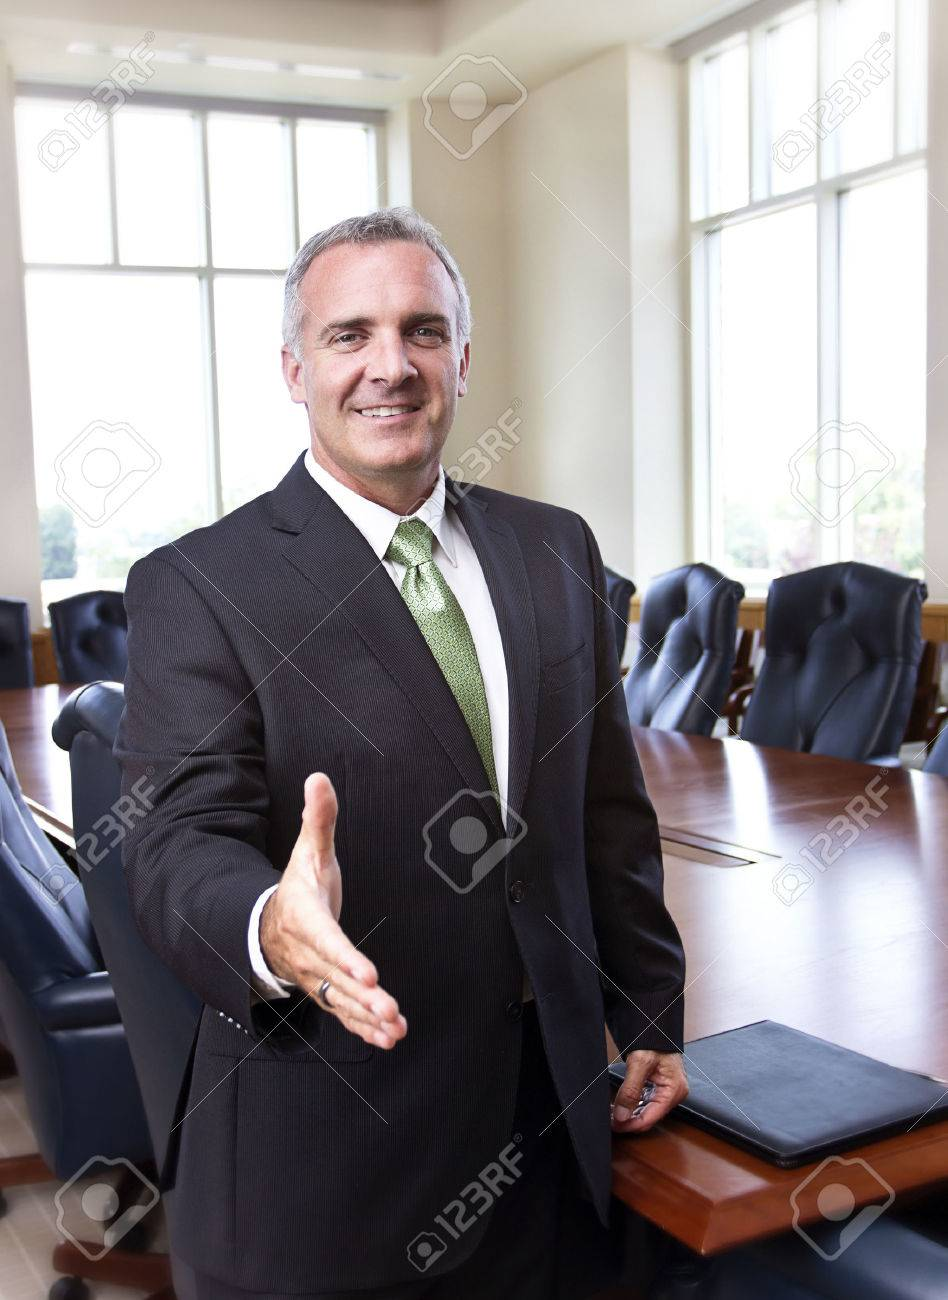 Businessman ready to shake hands Stock Photo - 22251996